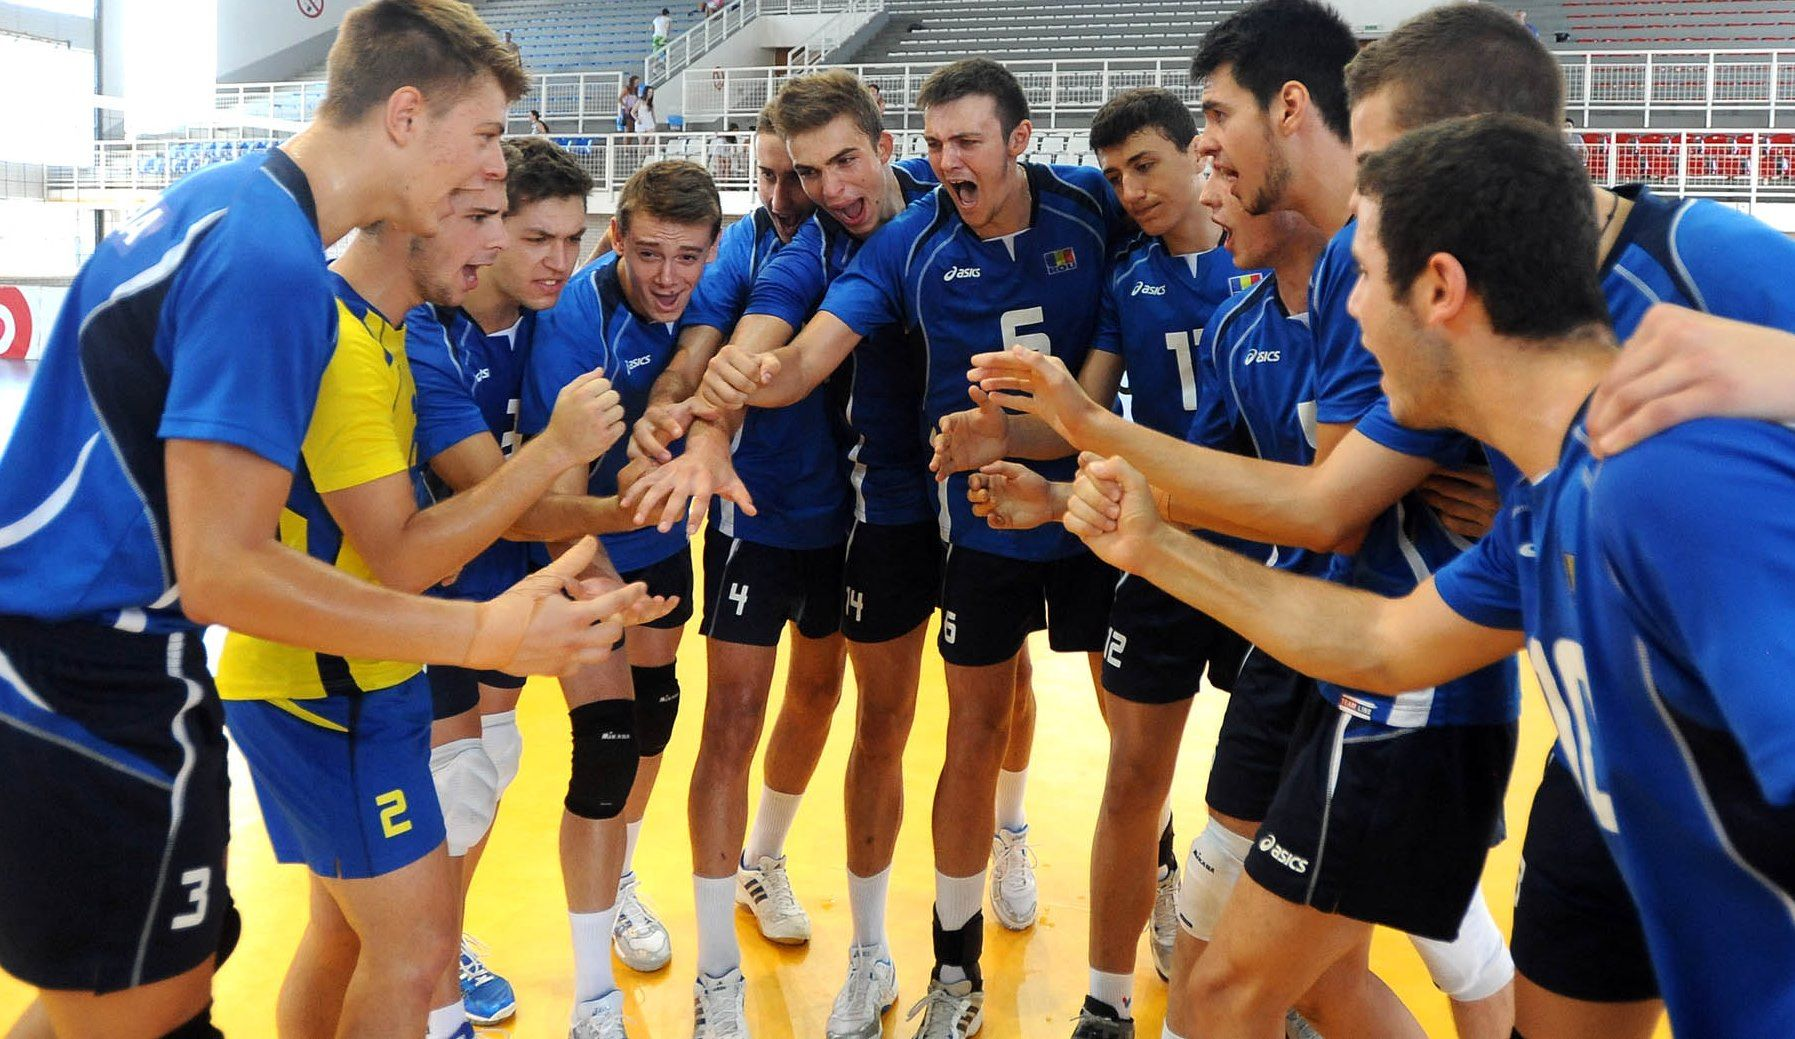 Romania U20 Vs Serbia U20 Volleyball Live Stream 29 Jun European Championship U20 Adsbygoogle Volleyball Live European Championships Sports Channel